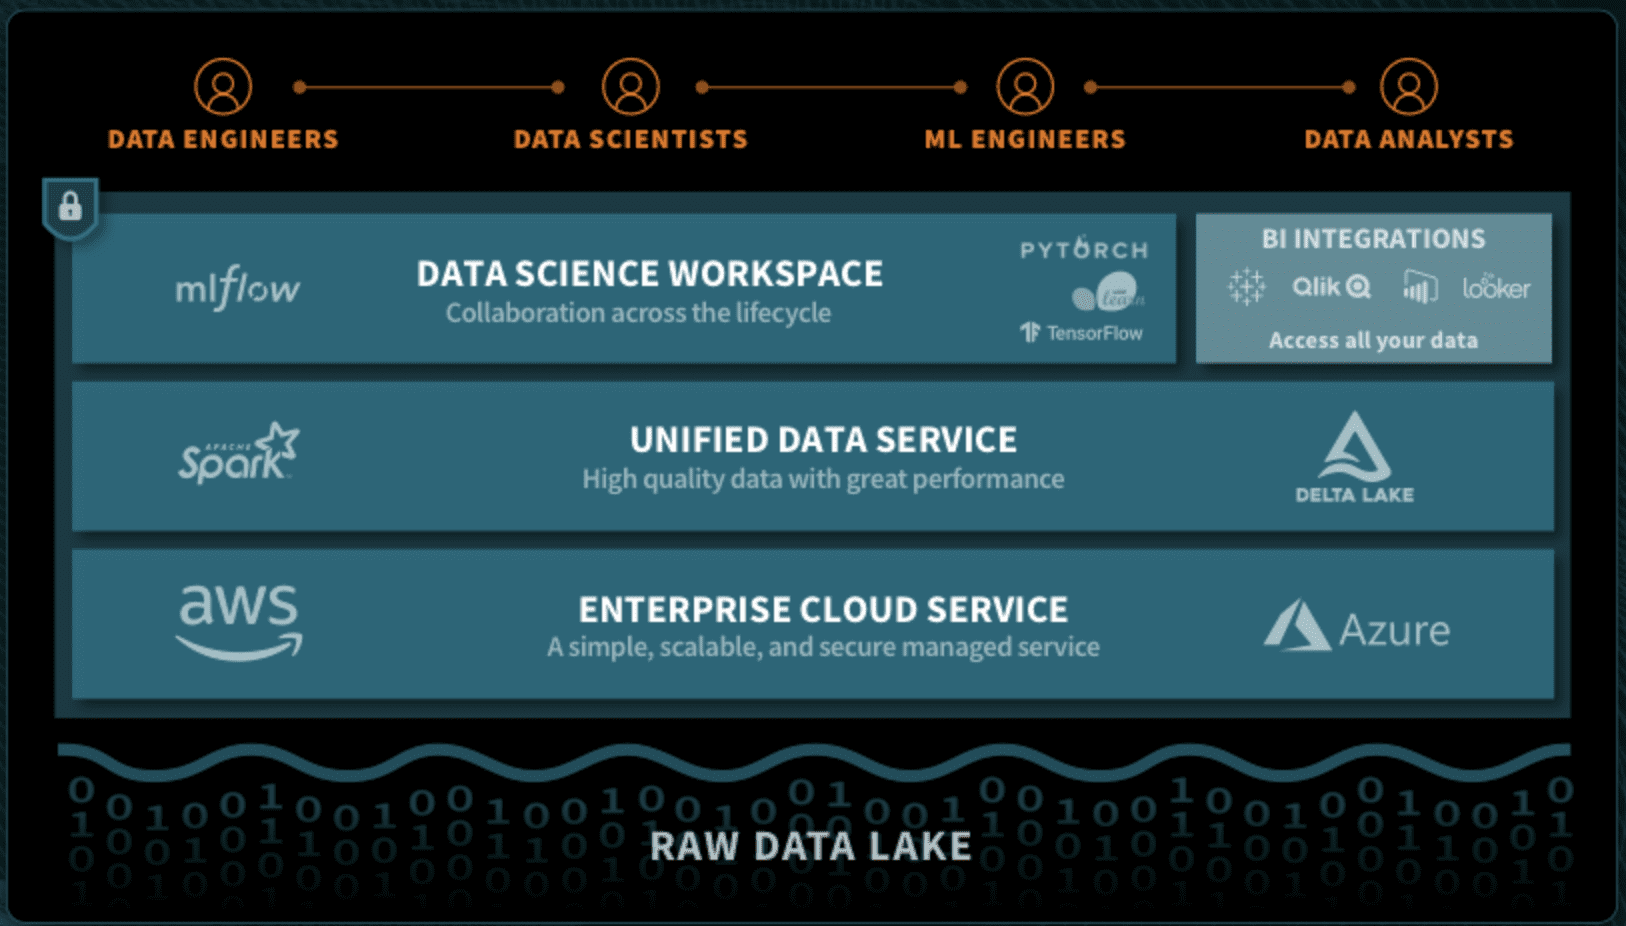 Databricks Unified Data Analytics Platform simplifies data access and engineering, while fostering a collaborative environment that supports analytics and machine learning driven innovation.